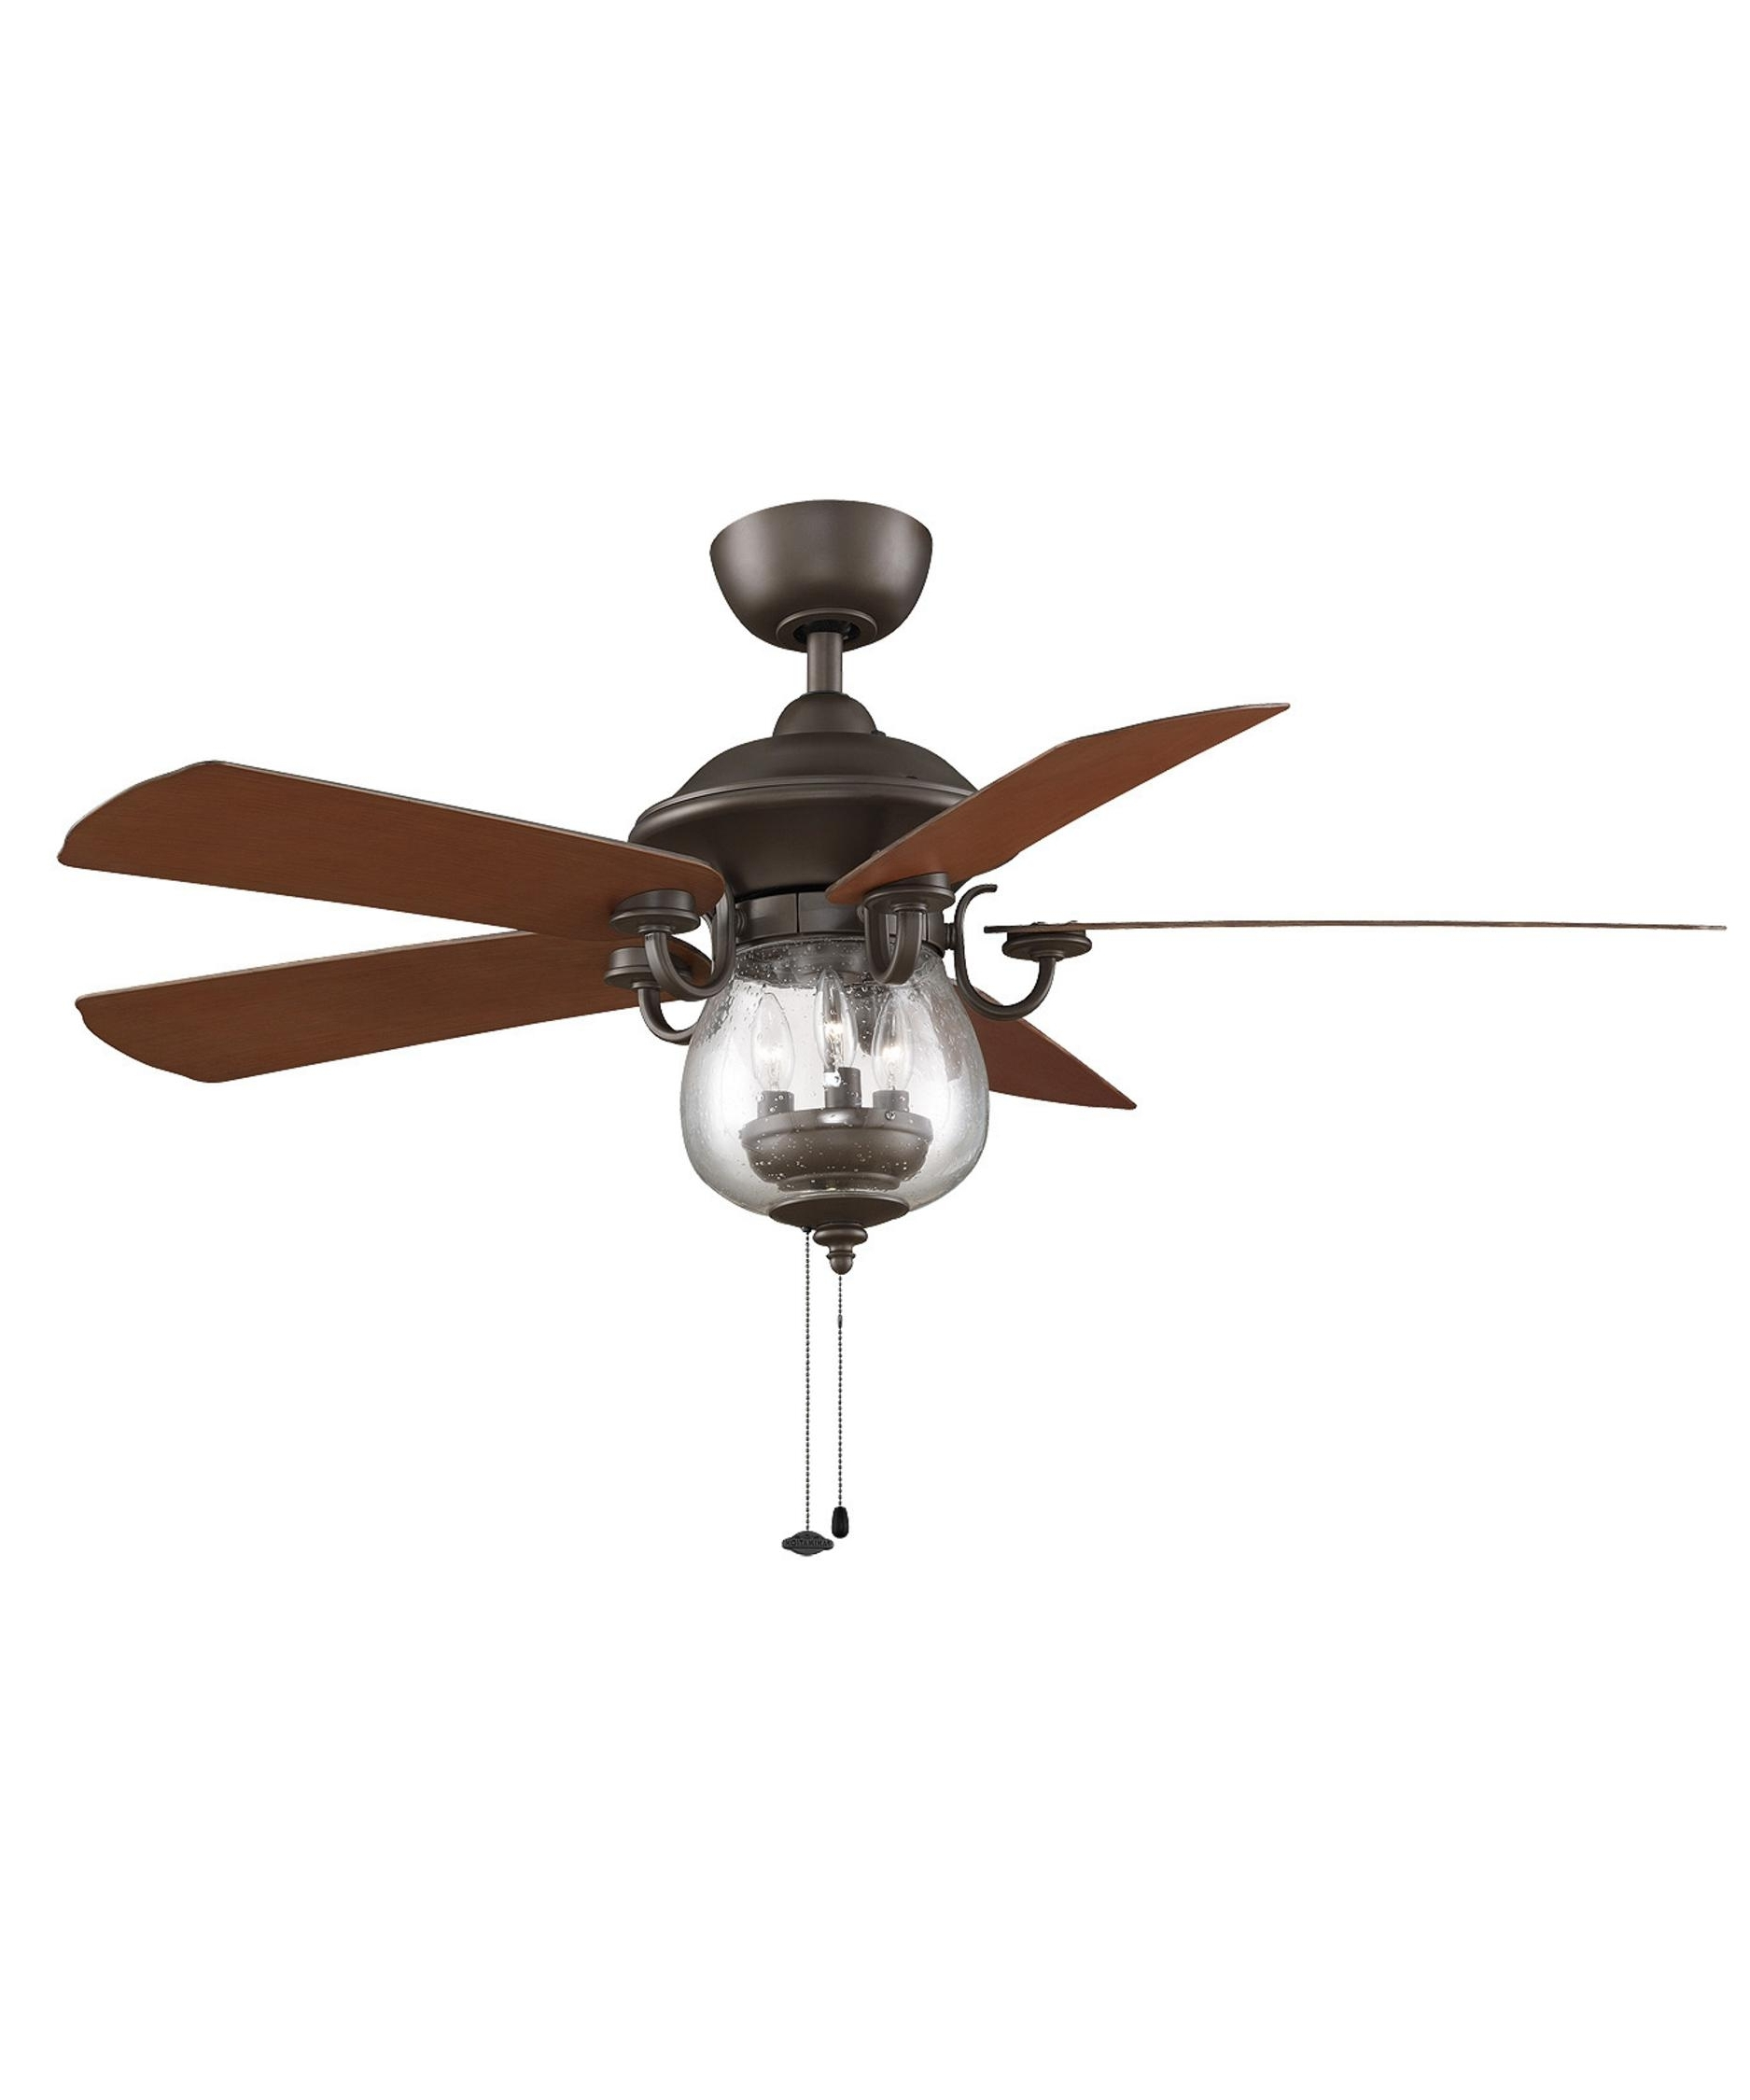 Capitol Regarding Current 52 Inch Outdoor Ceiling Fans With Lights (View 6 of 20)